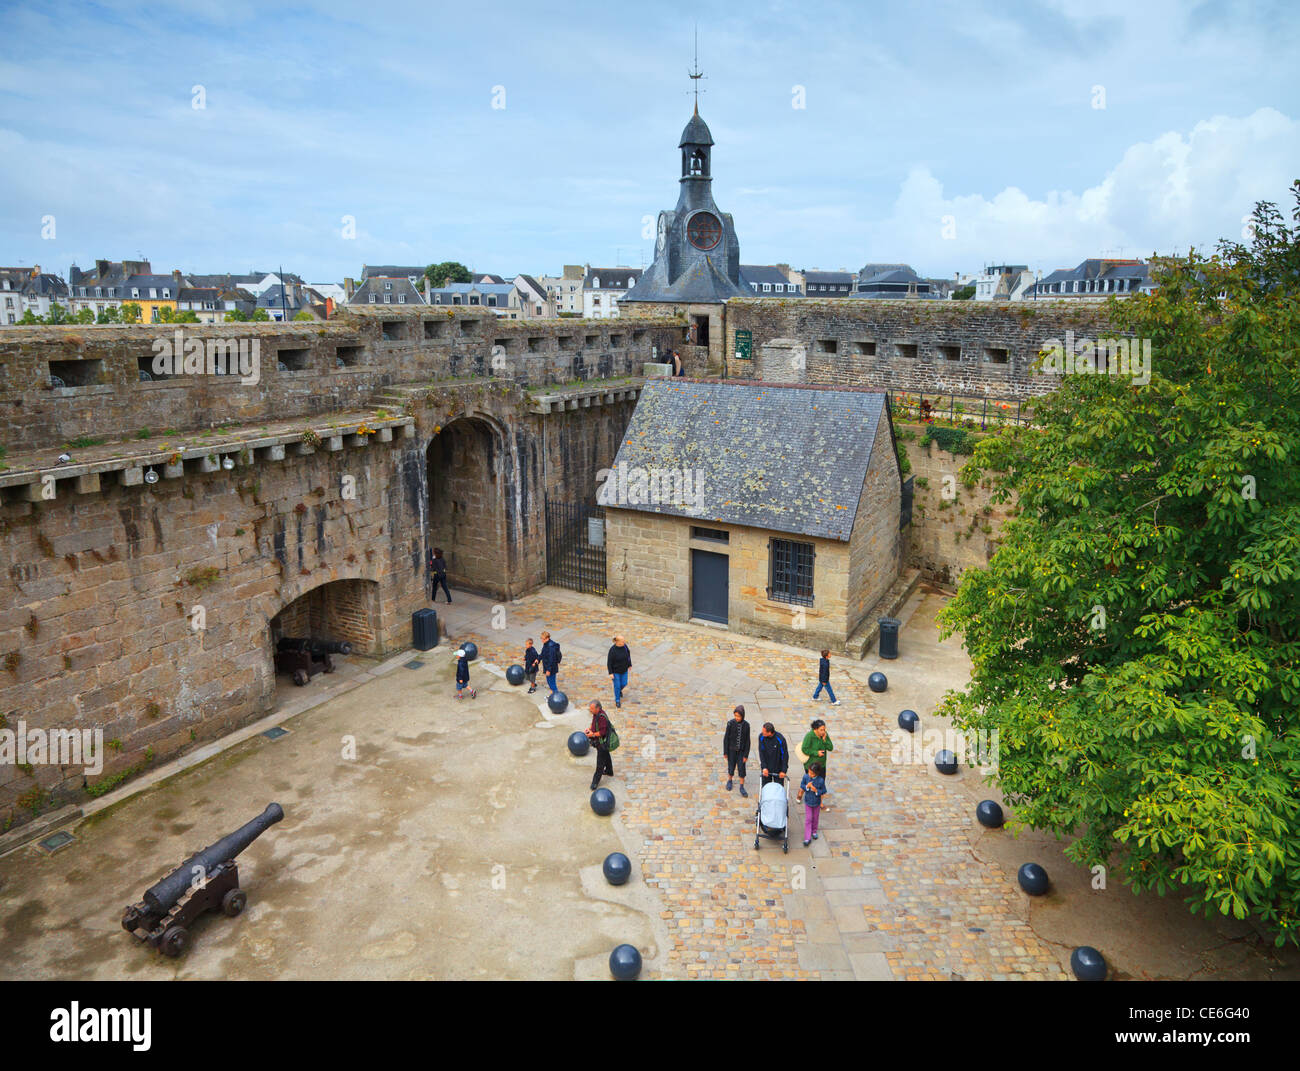 A high angle view of the old town of Concarneau, Brittany, France, from the ramparts. - Stock Image